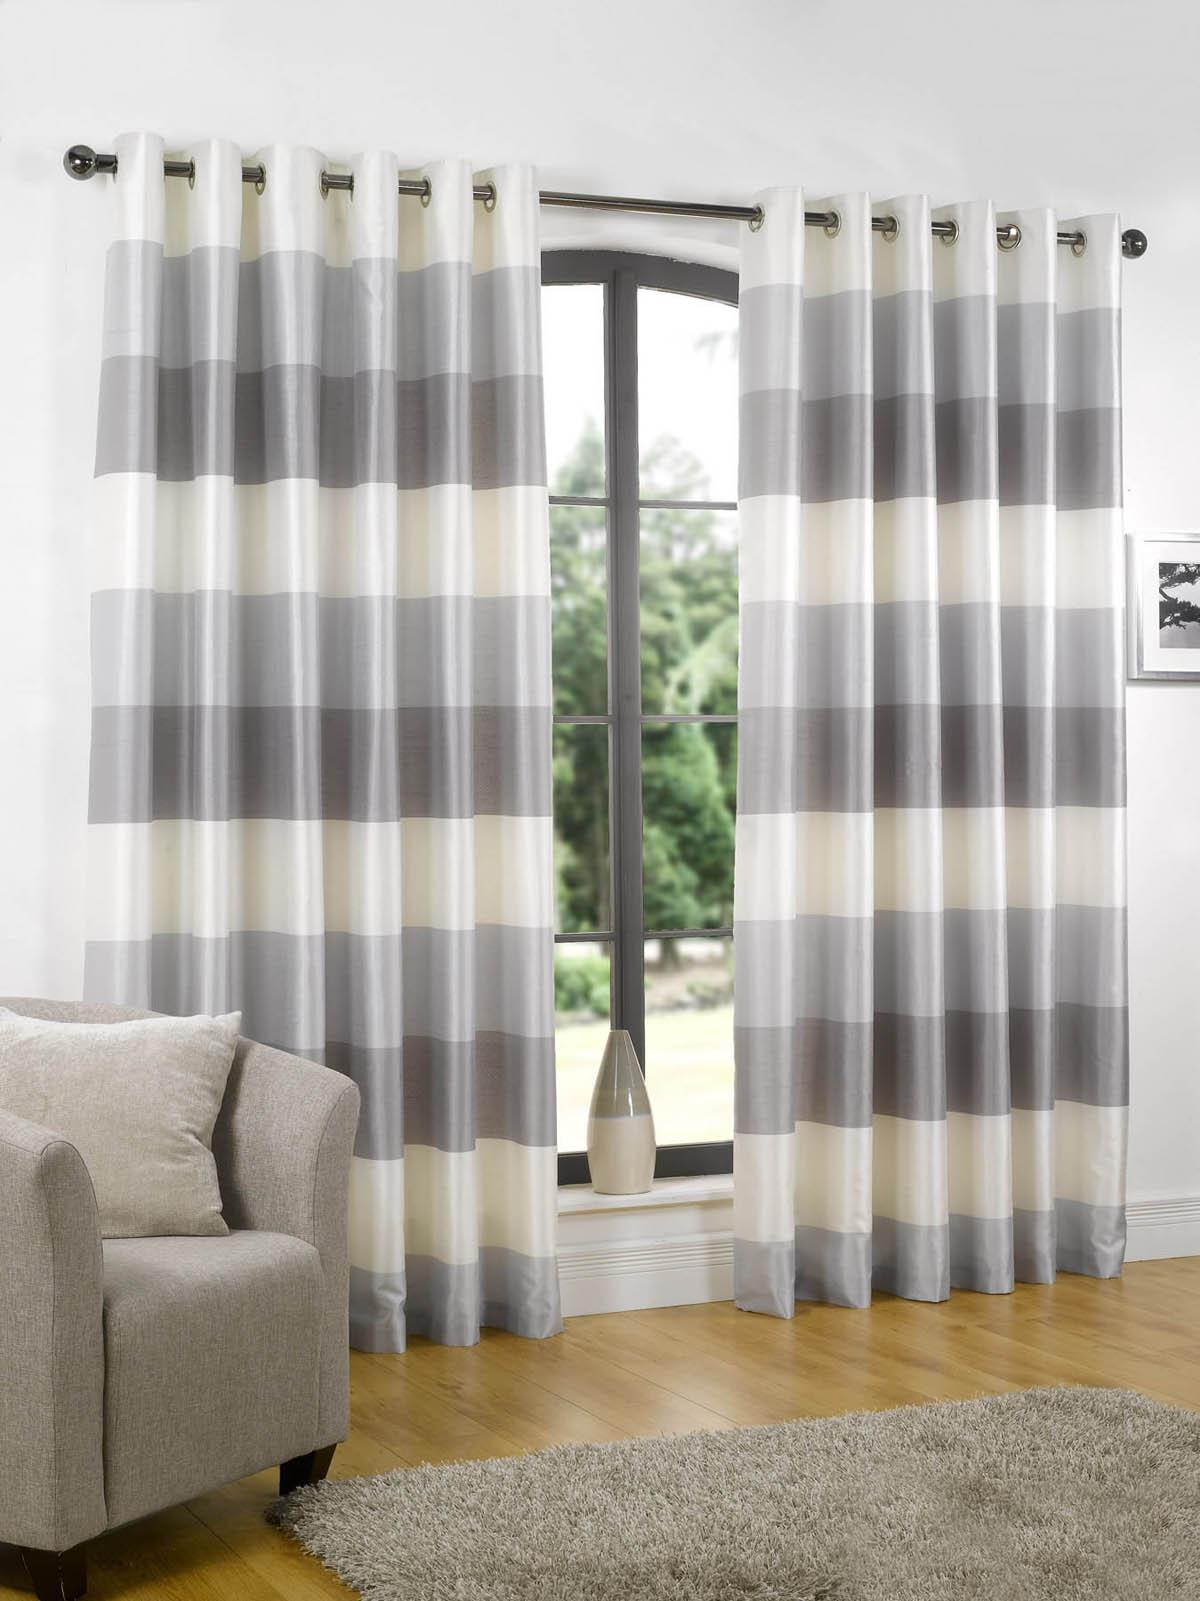 Brown and white horizontal striped curtains